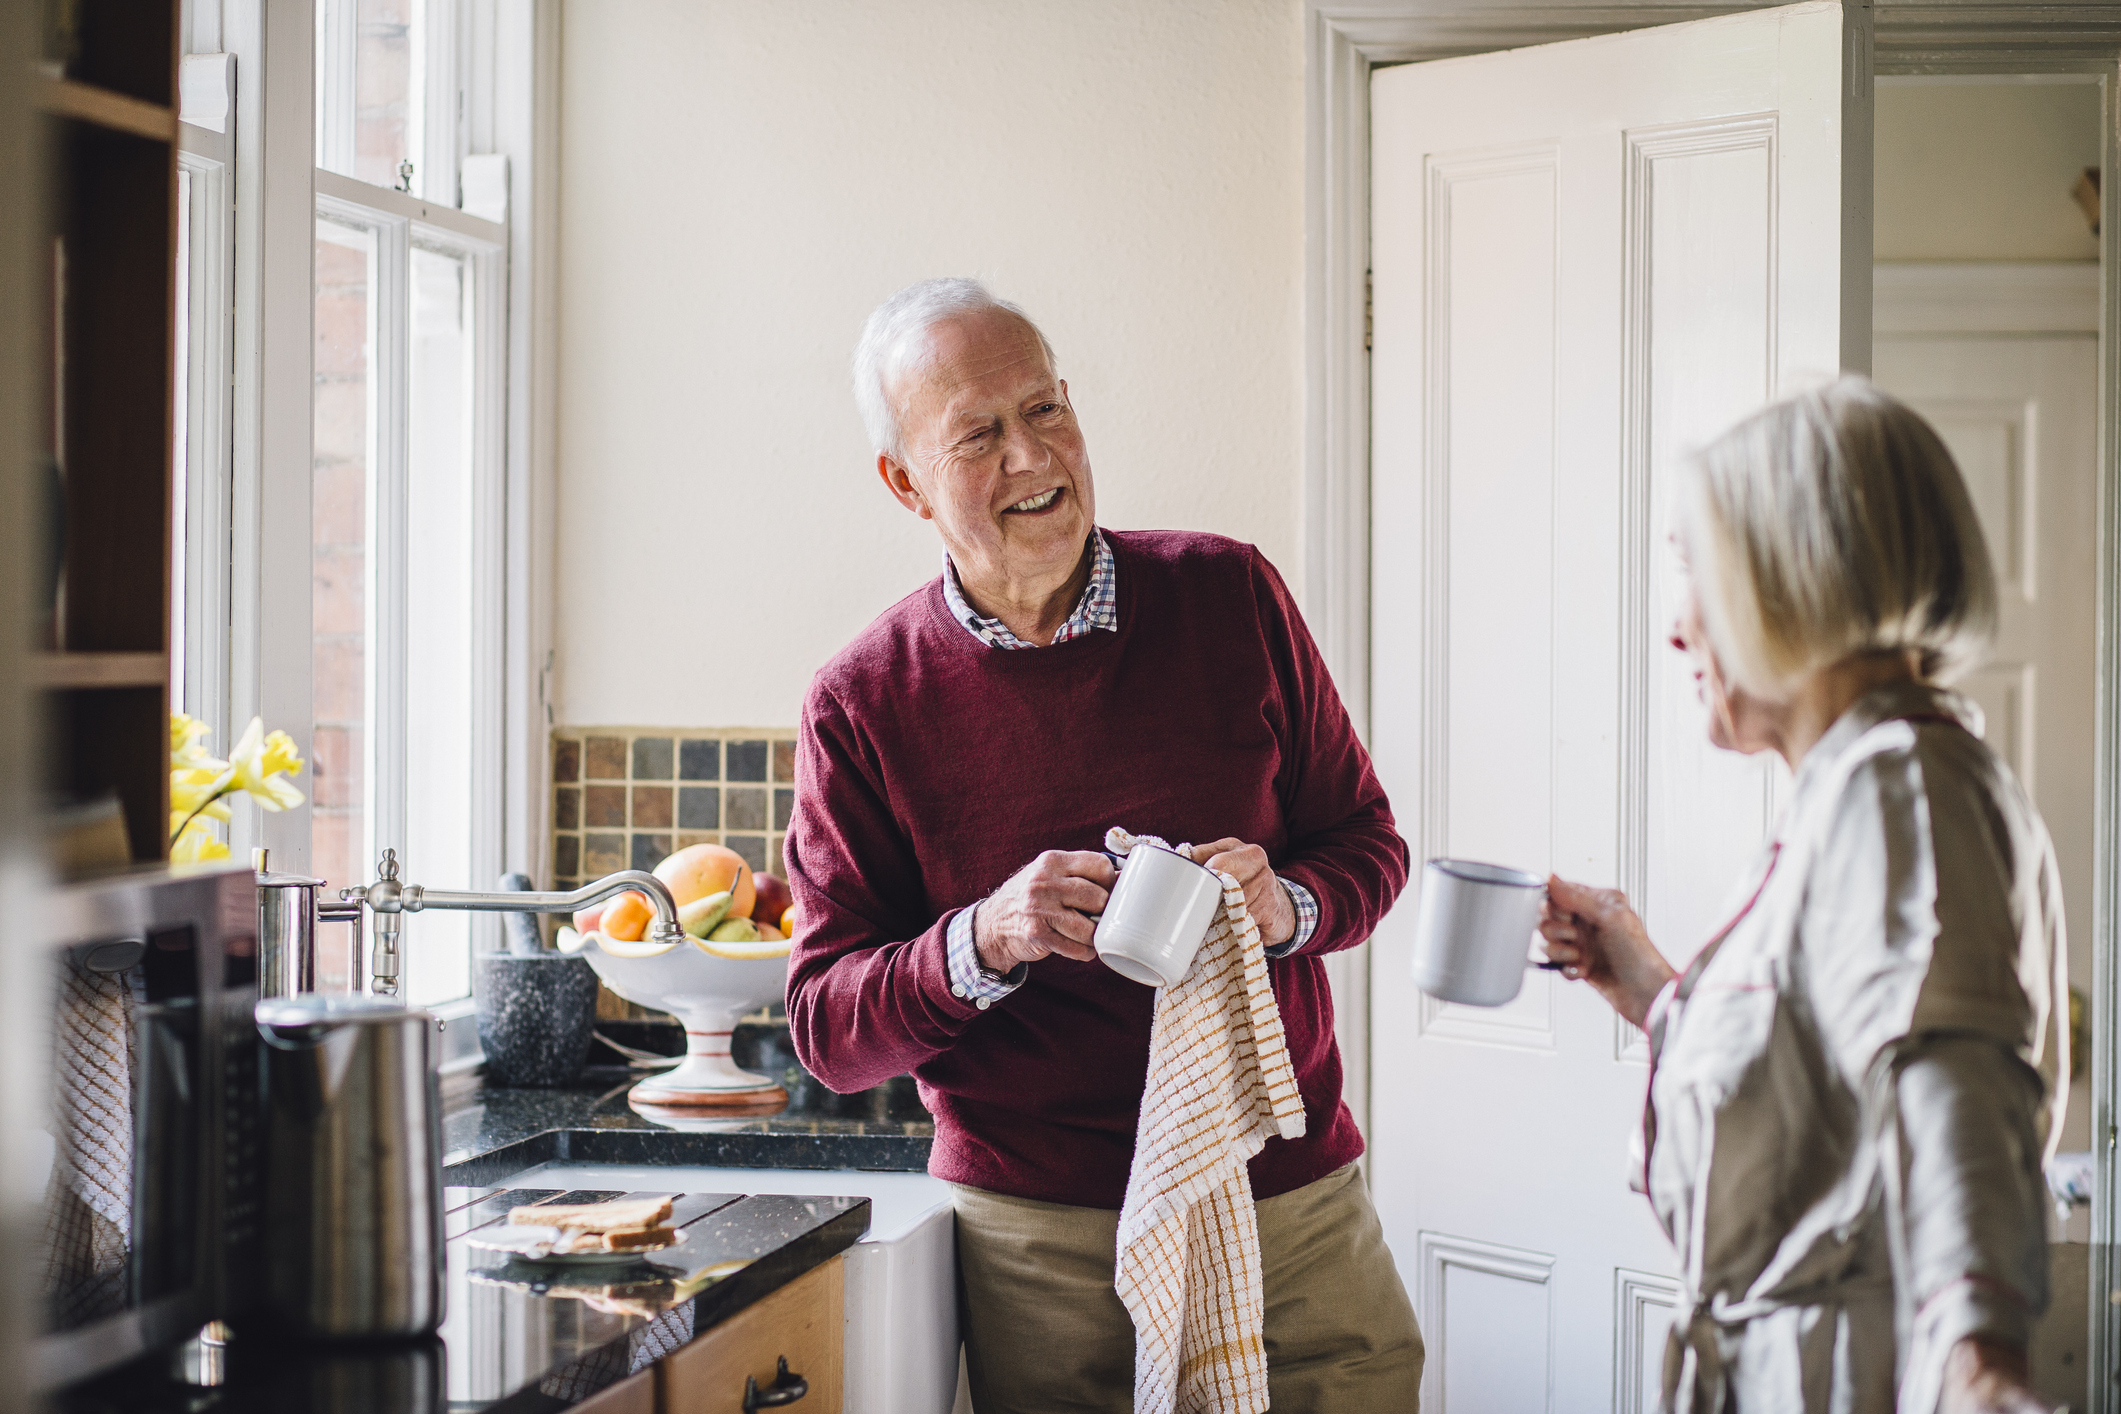 avoid selling your house to pay for care